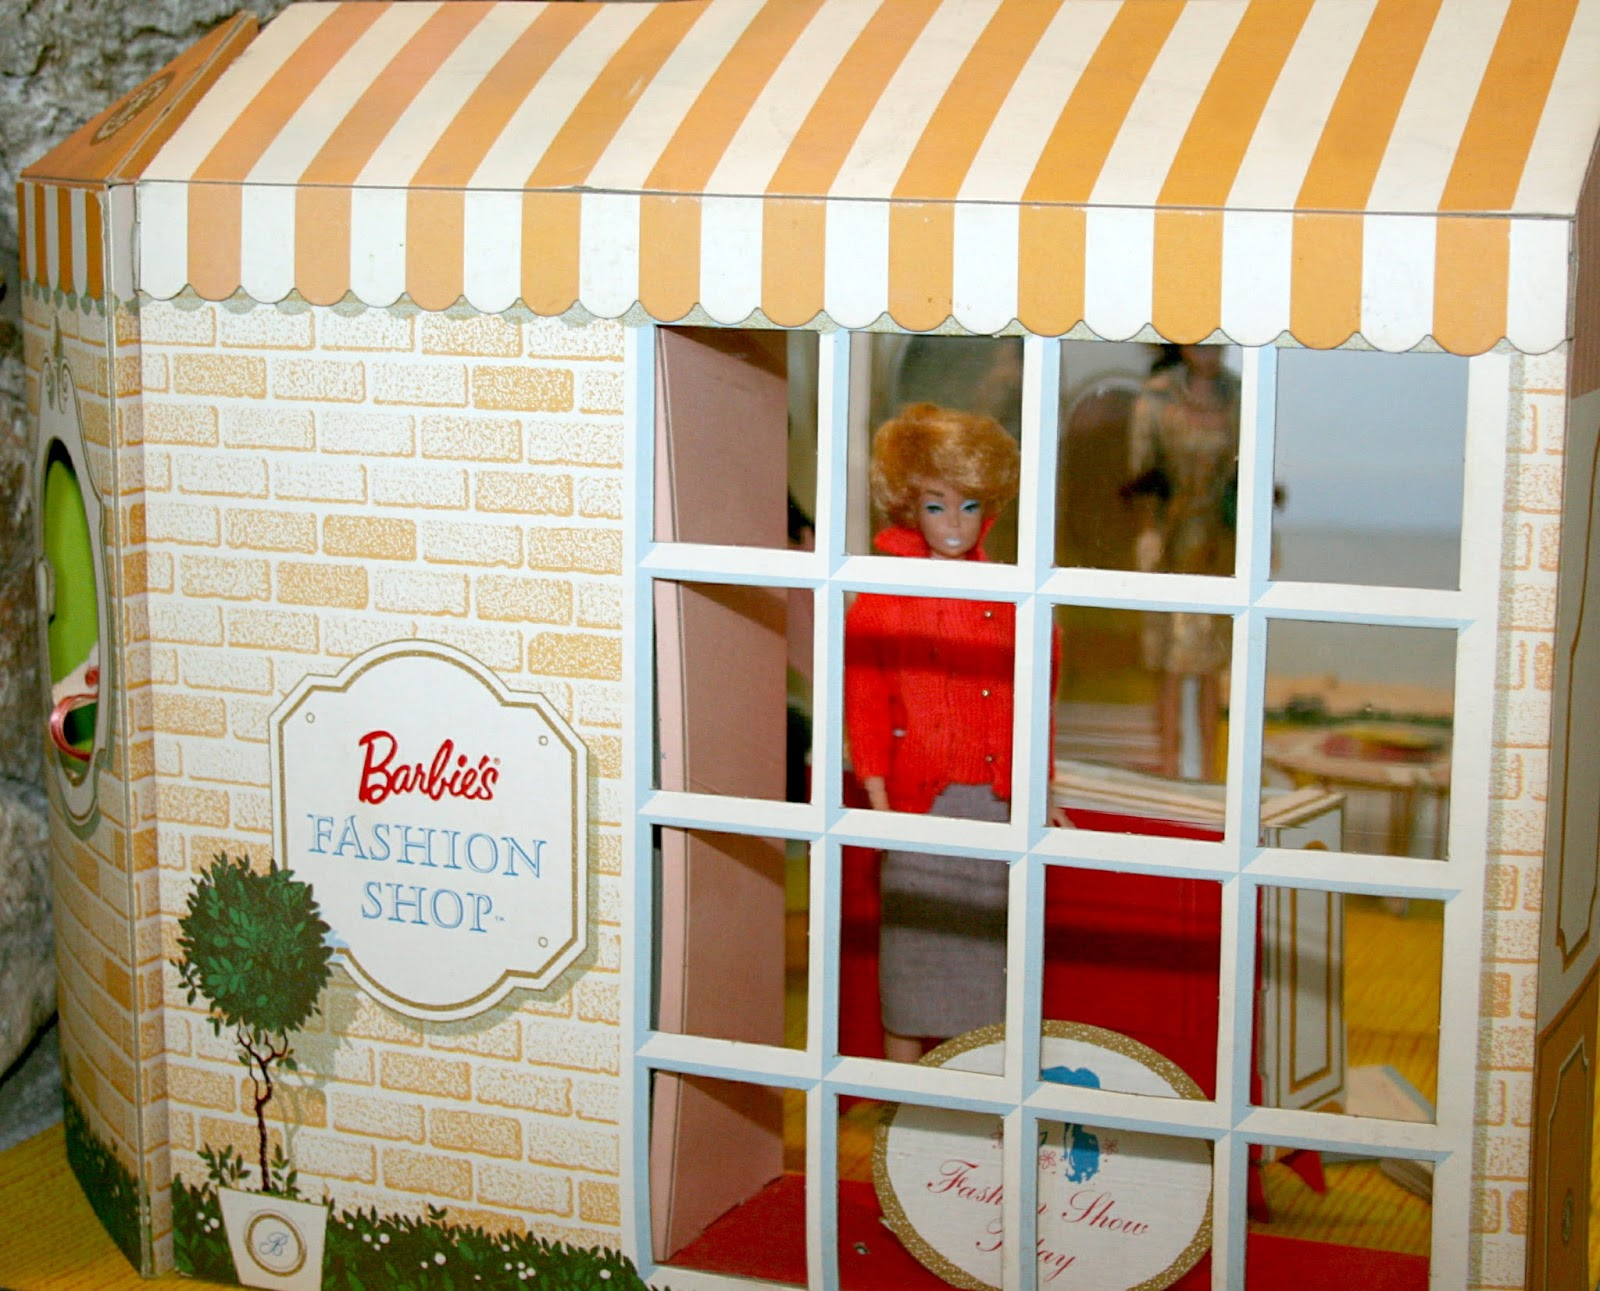 Mattel's Fashion Barbie Shop